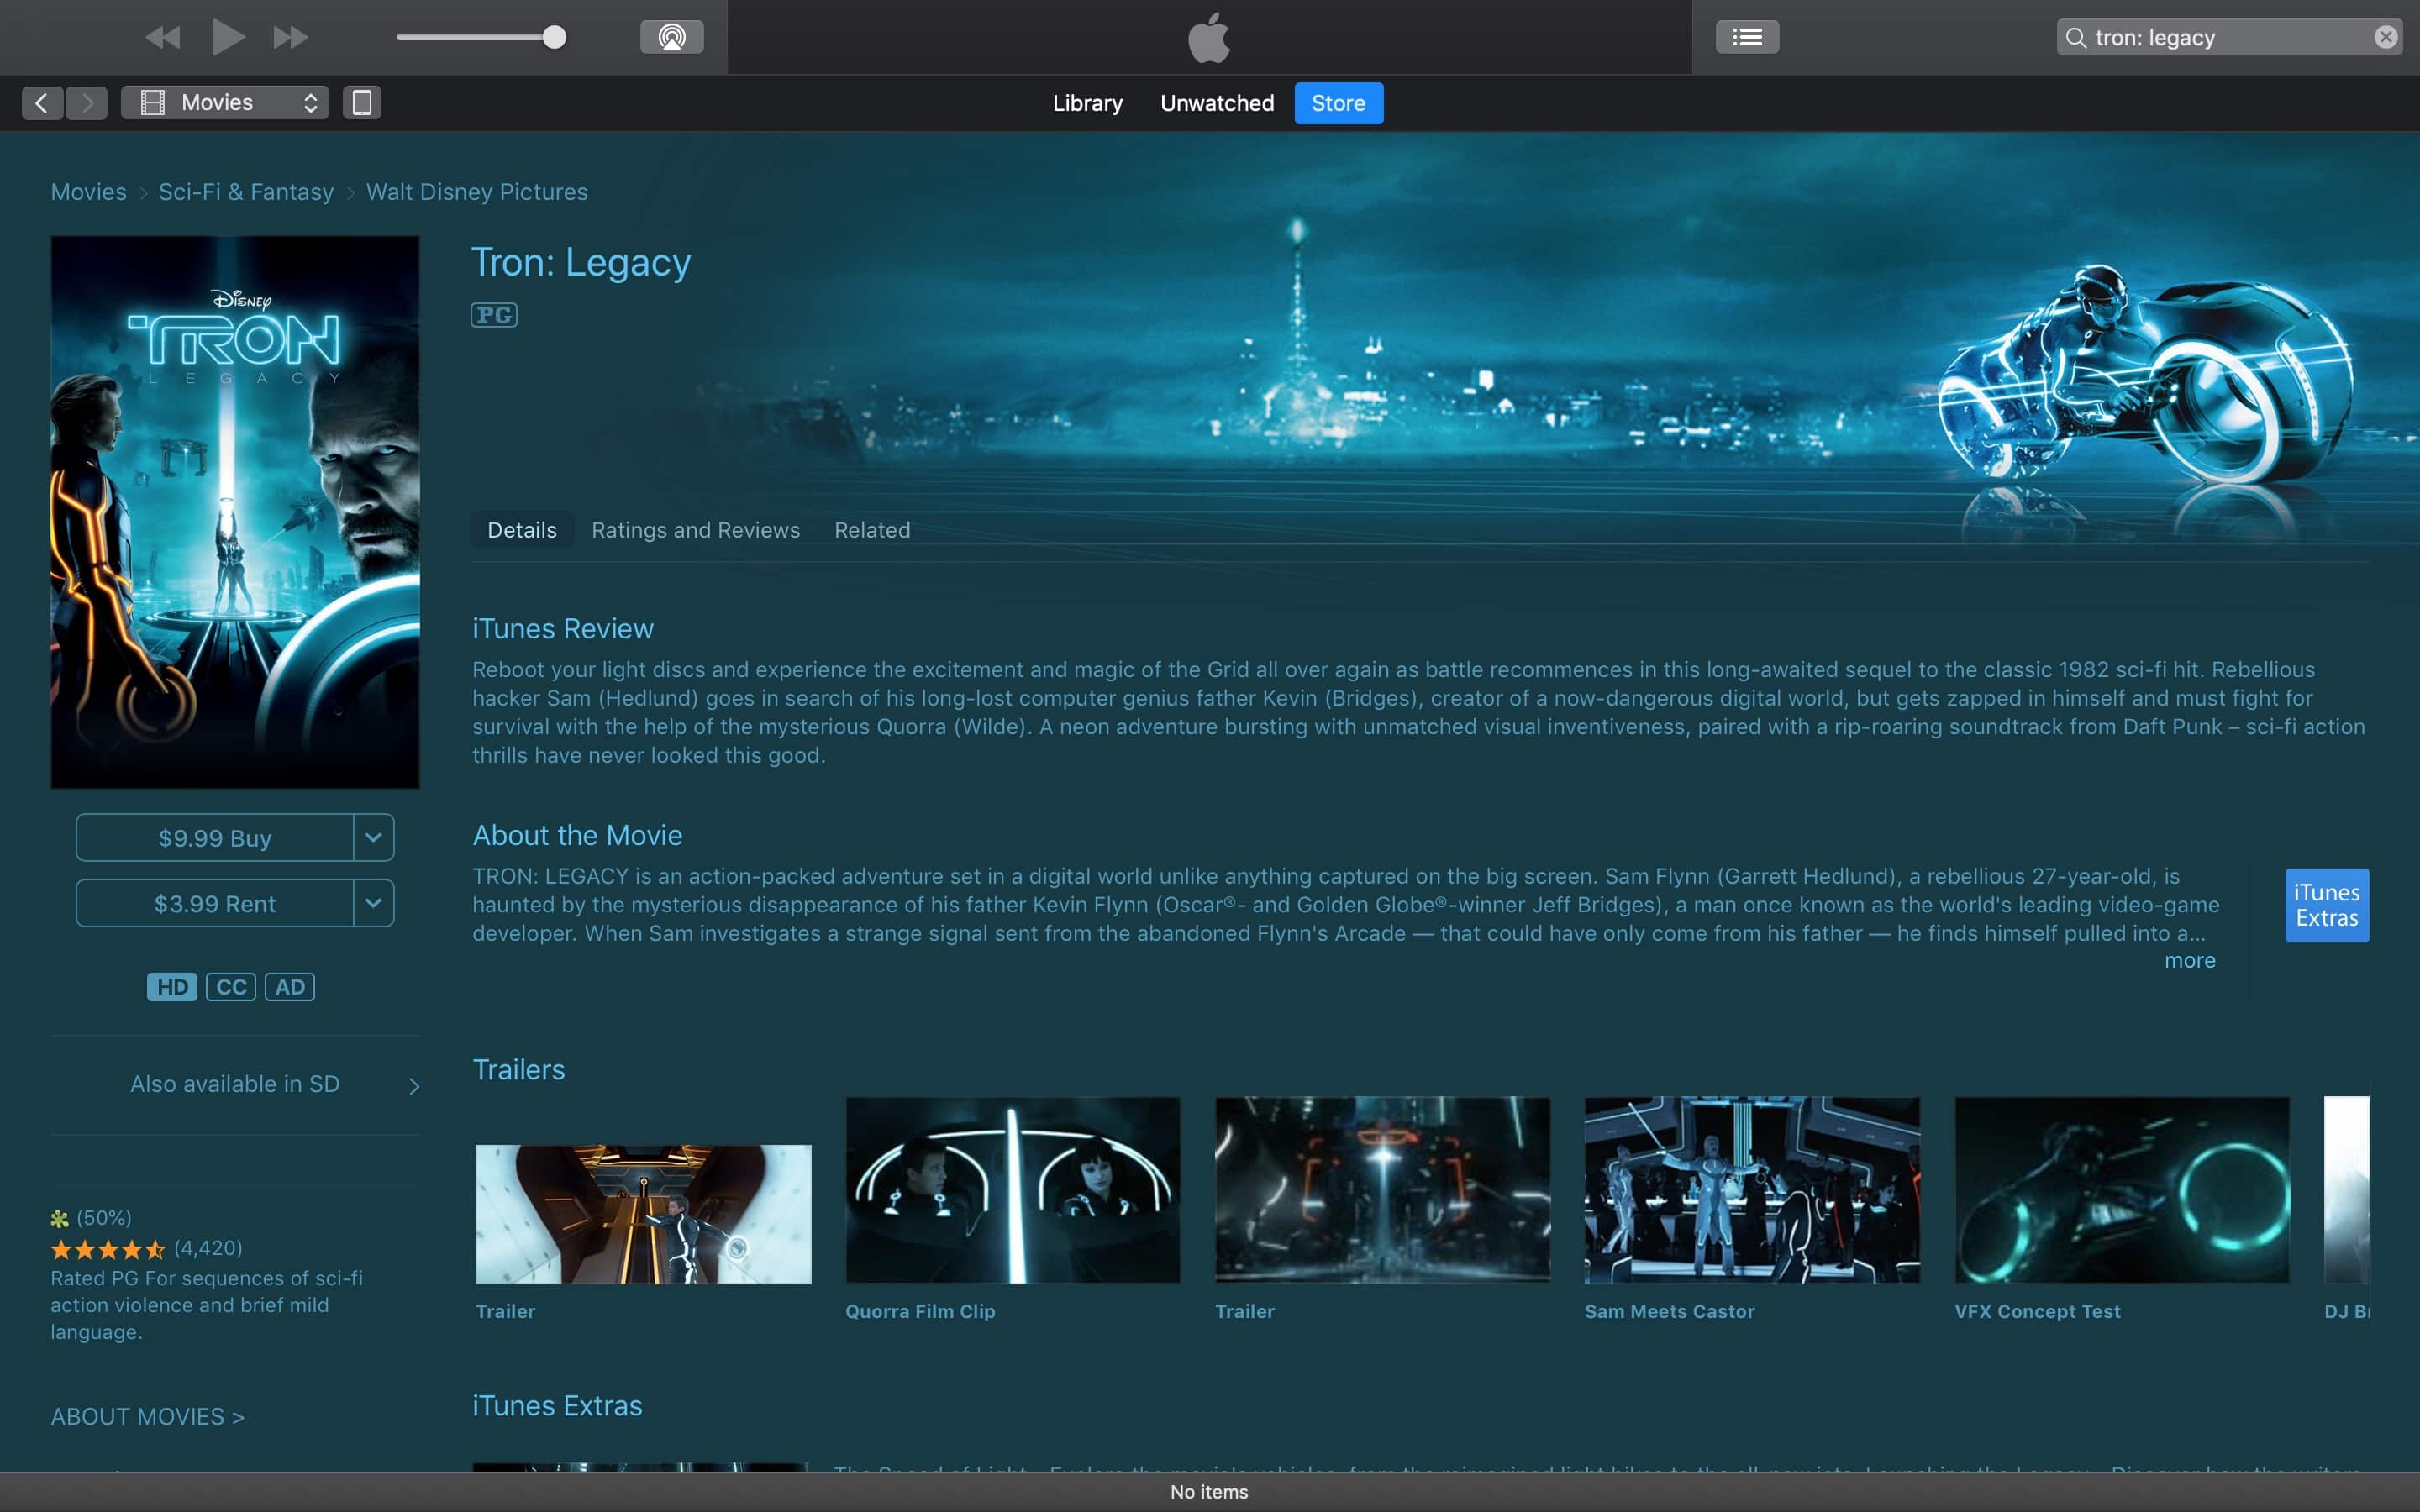 Disney's Tron (The Original) and Tron Legacy (new one) on Sale on iTunes and Amazon for $9.99 in HD